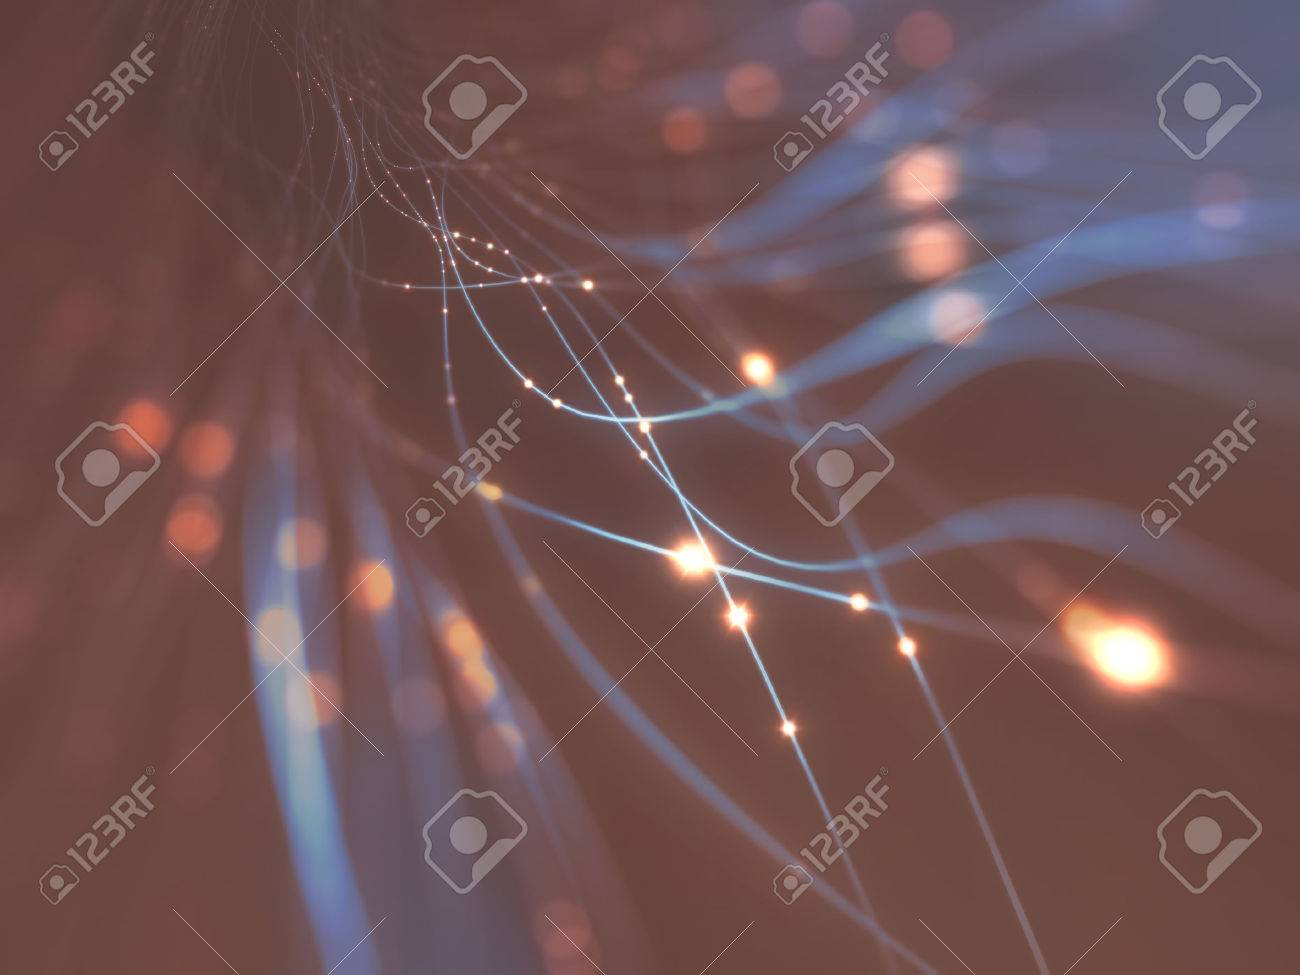 Abstract background in a concept of optical fiber. Clipping path included. Stock Photo - 46574193